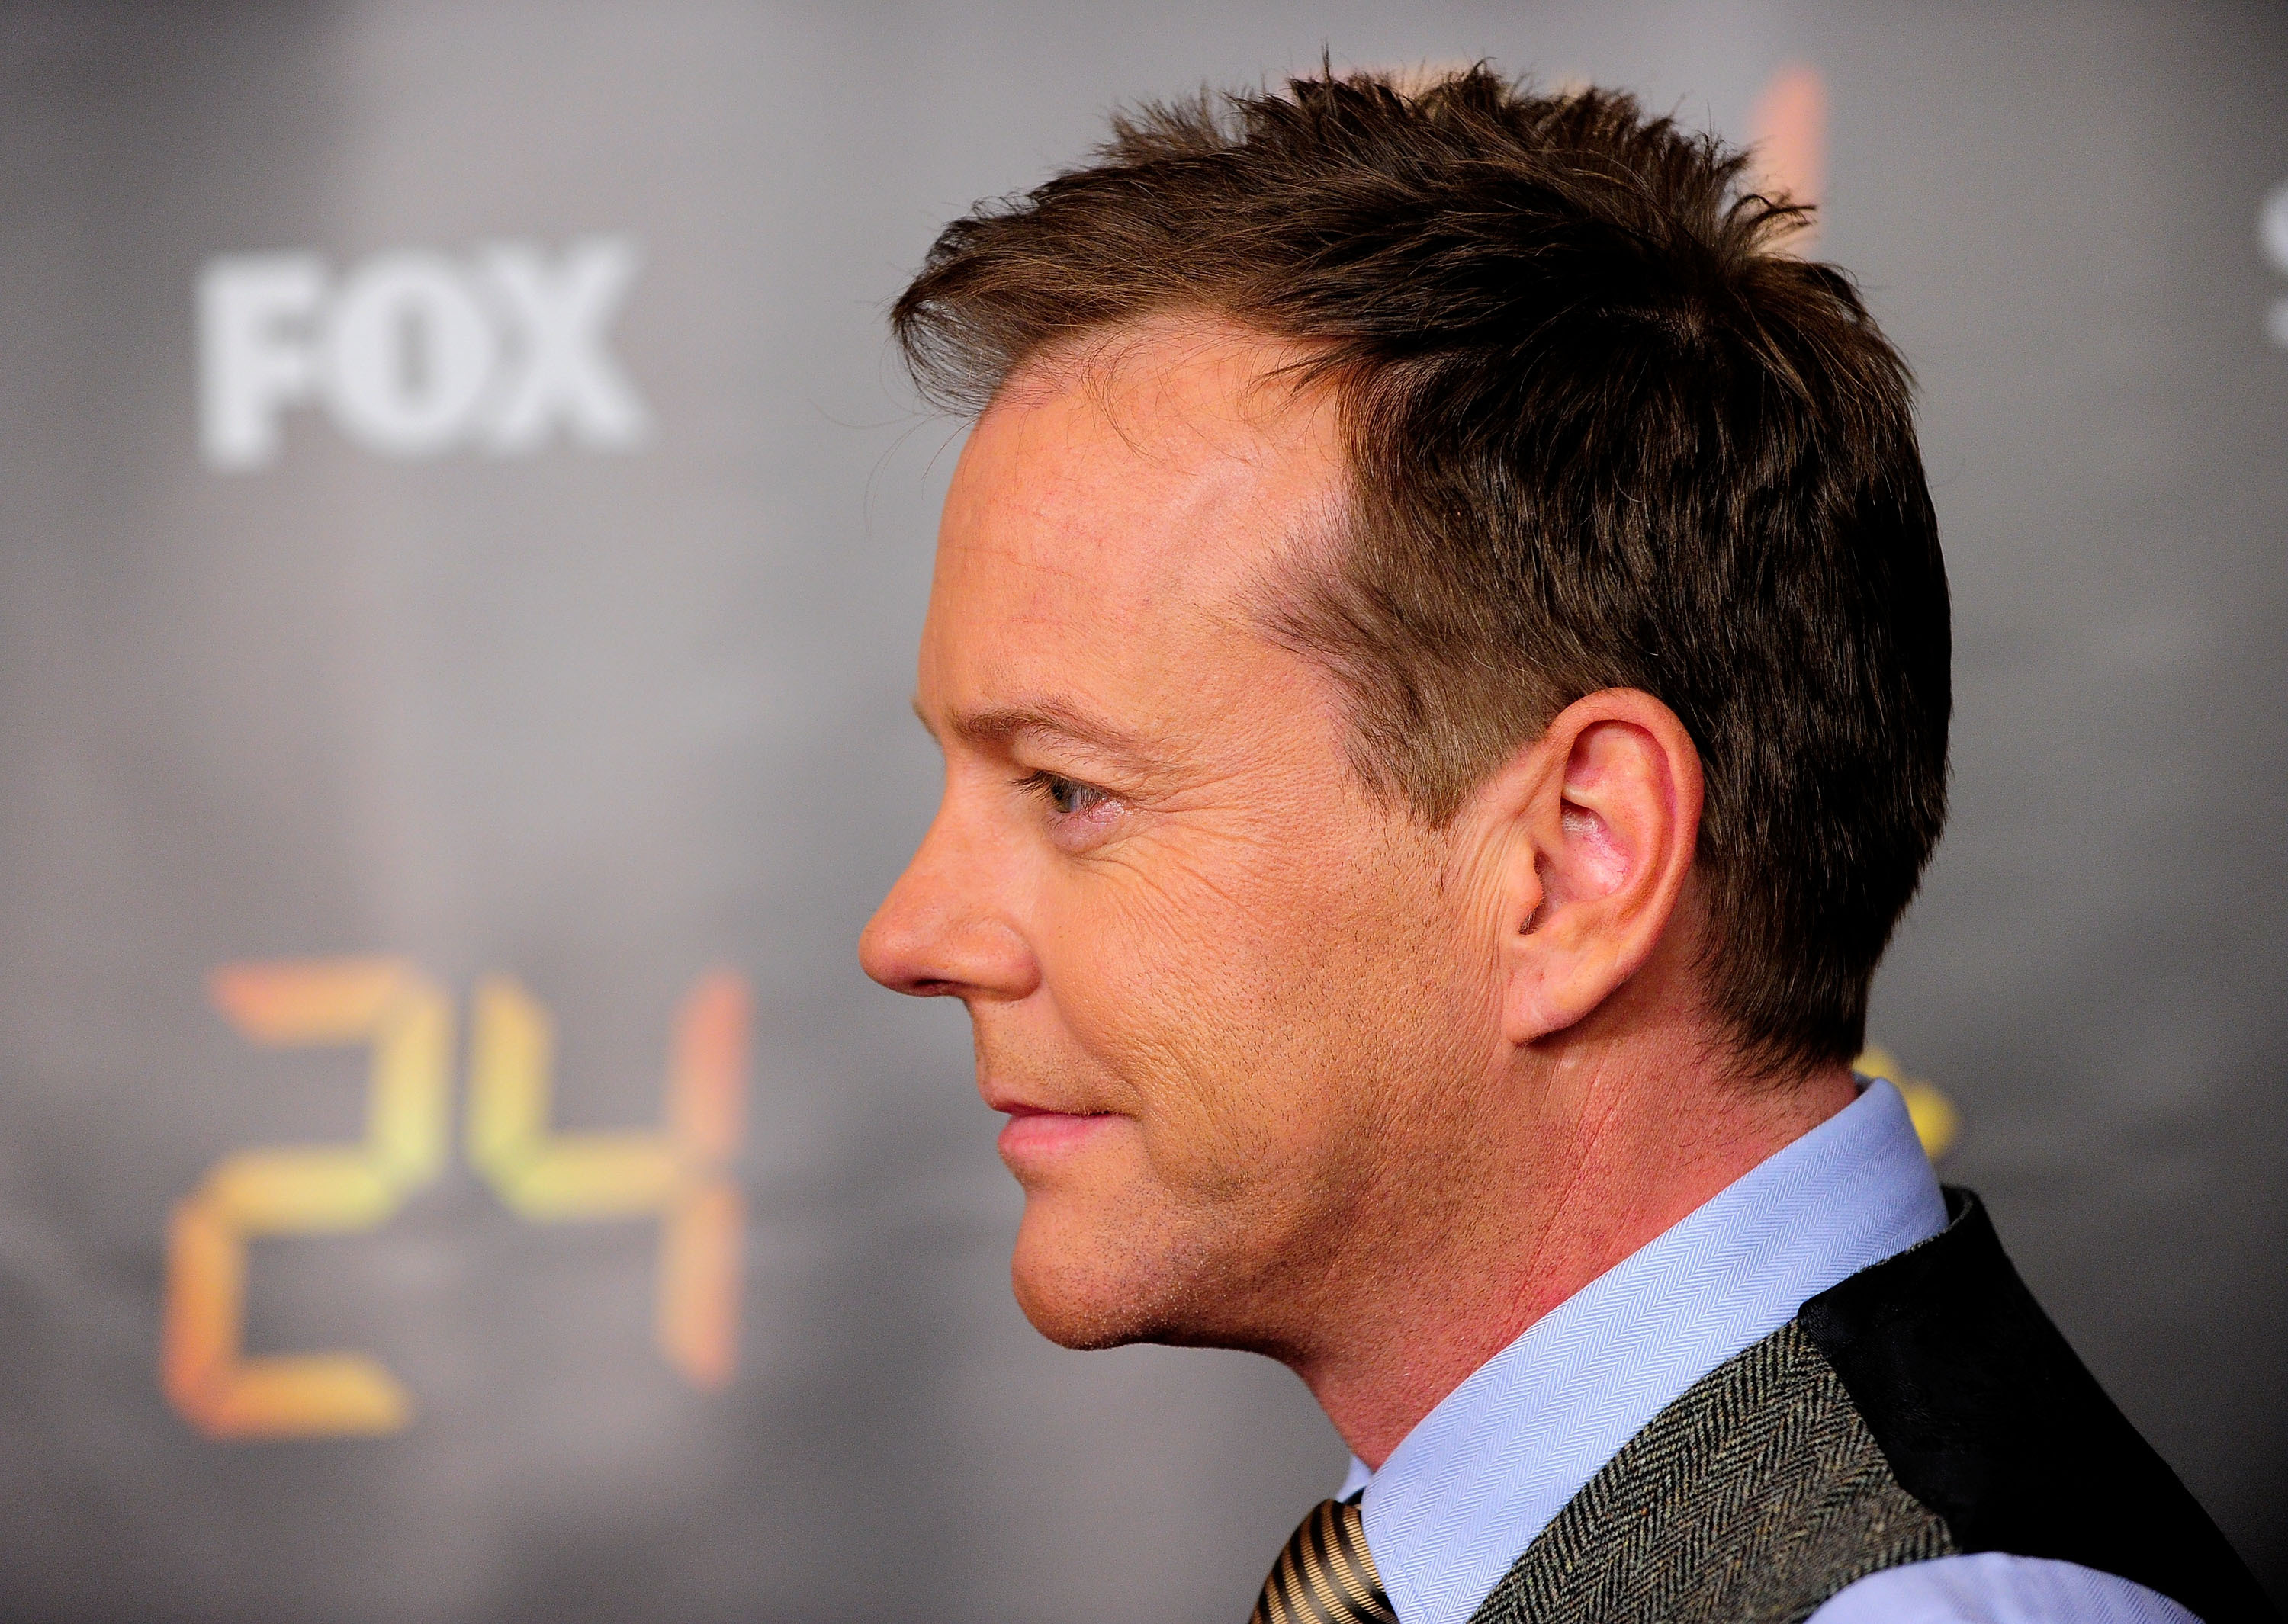 Kiefer Sutherland Wallpapers Hd